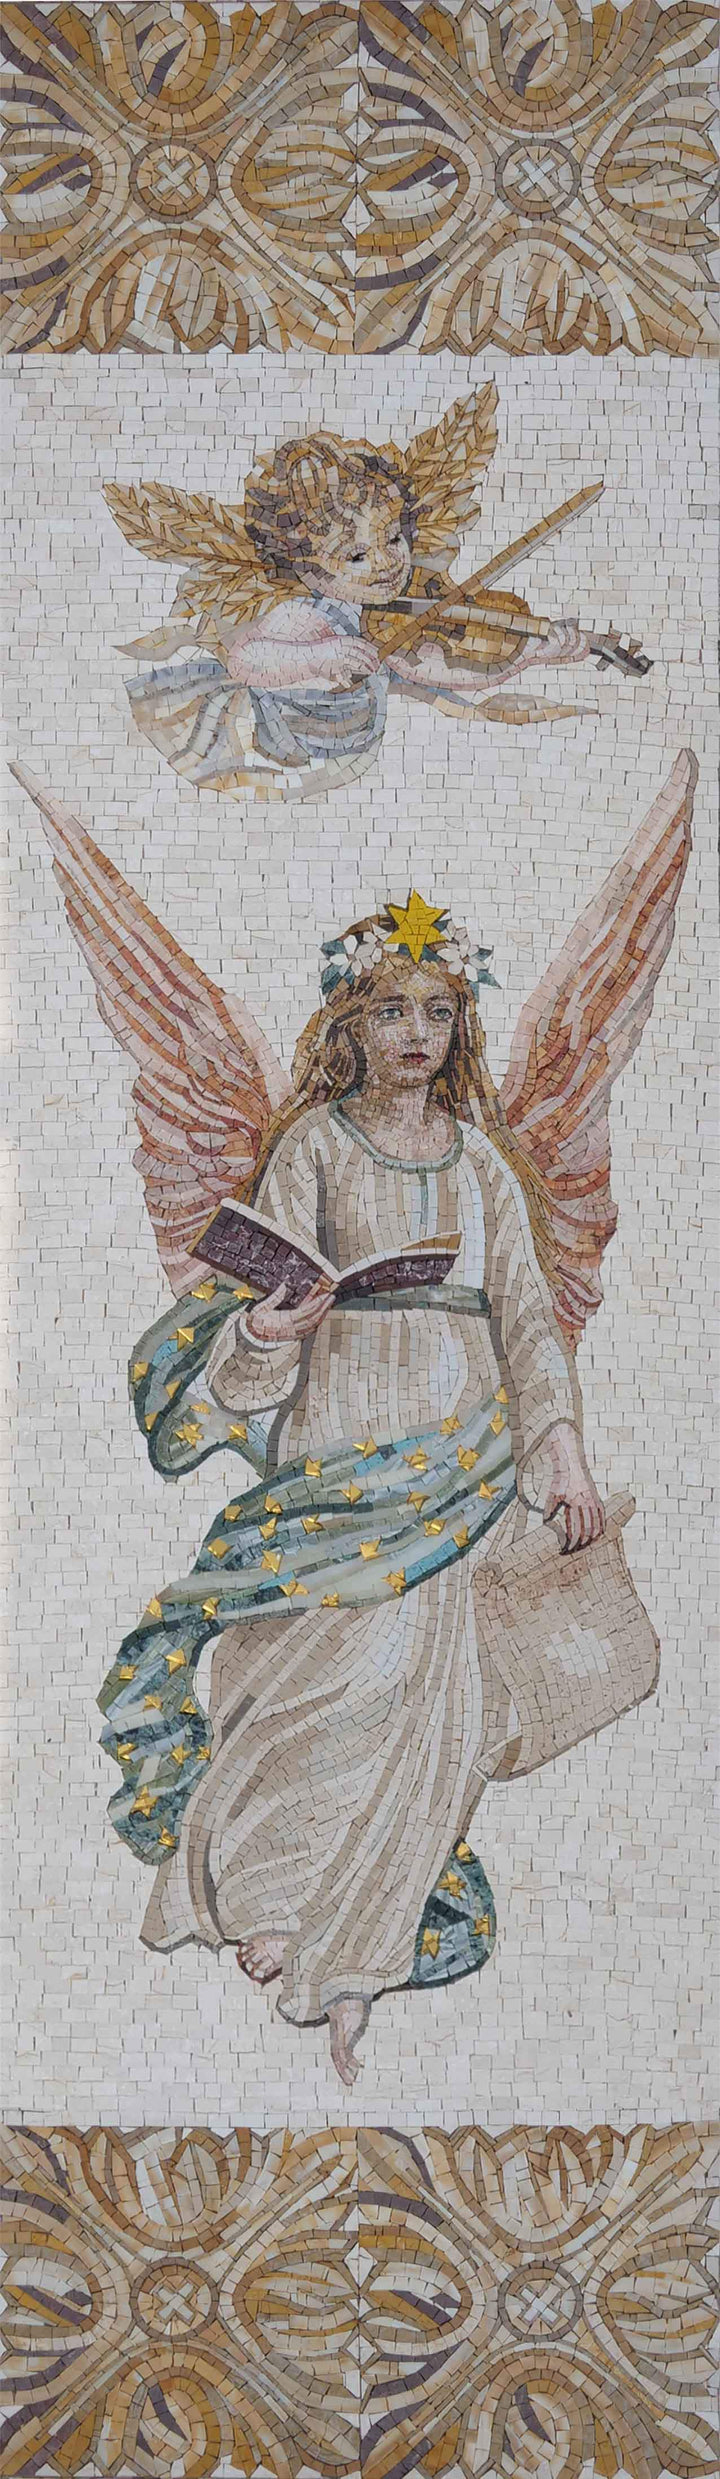 Angels Religious Mosaic Art